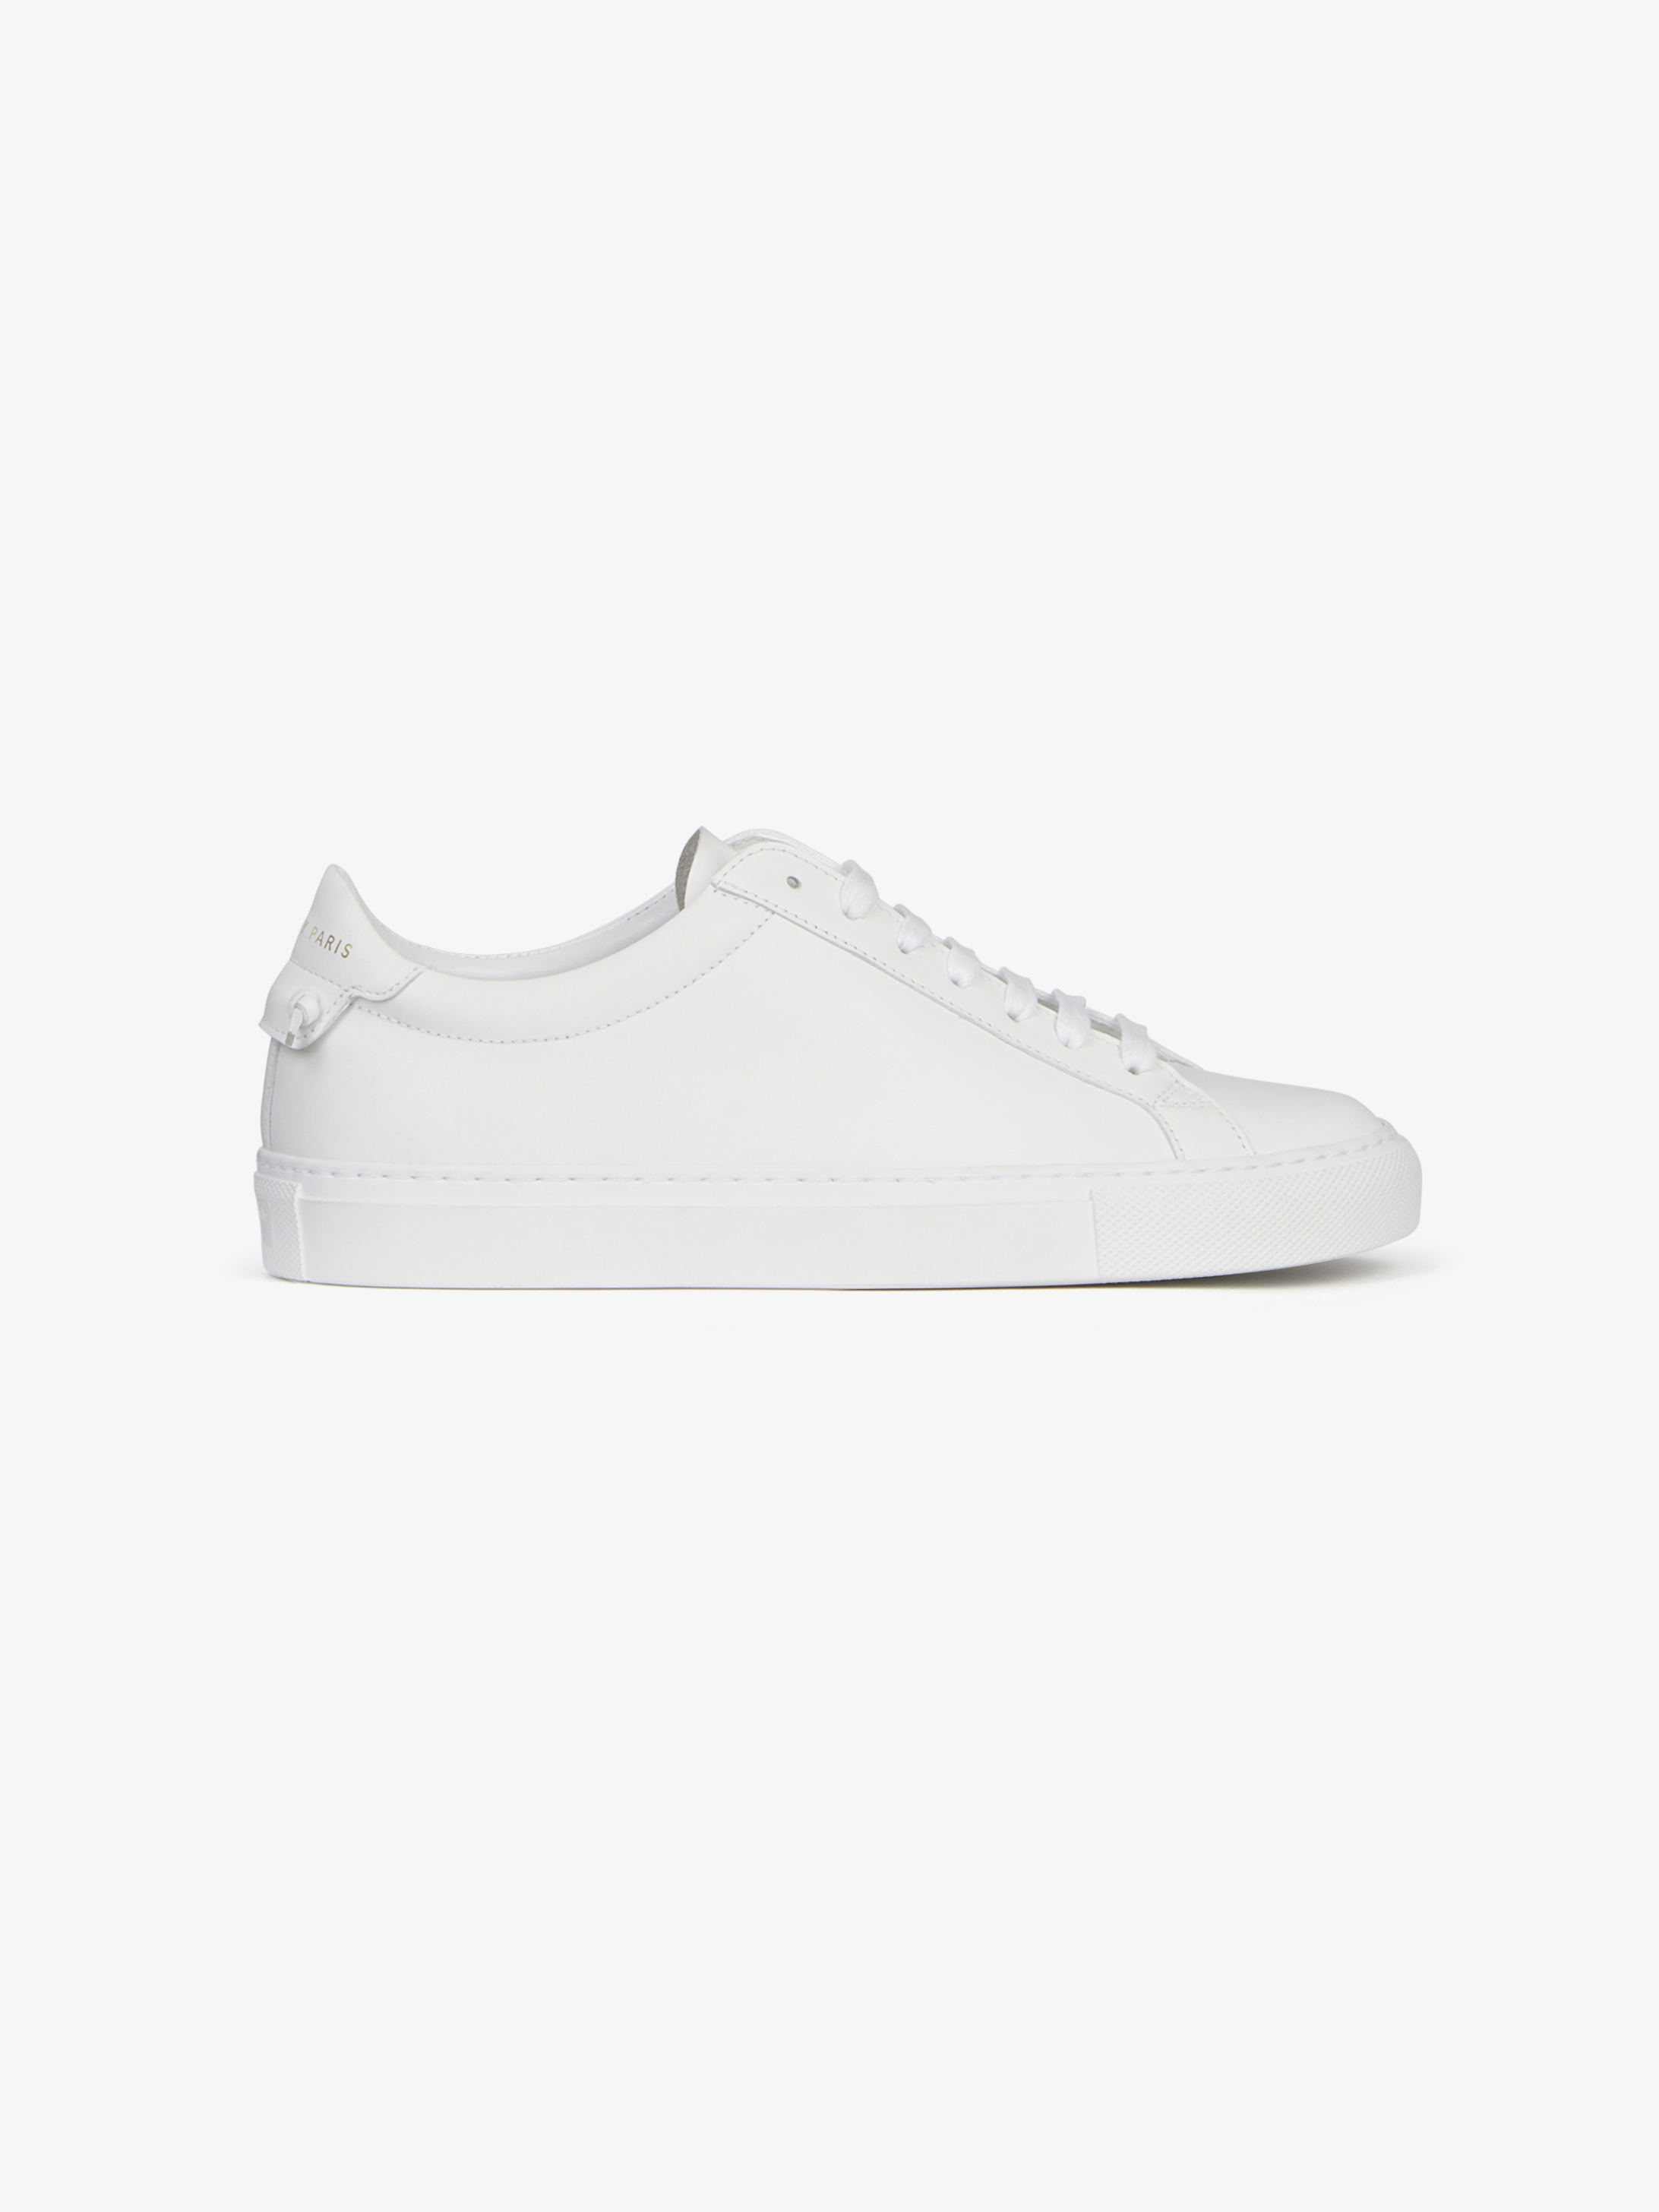 Sneakers in matte leather | GIVENCHY Paris